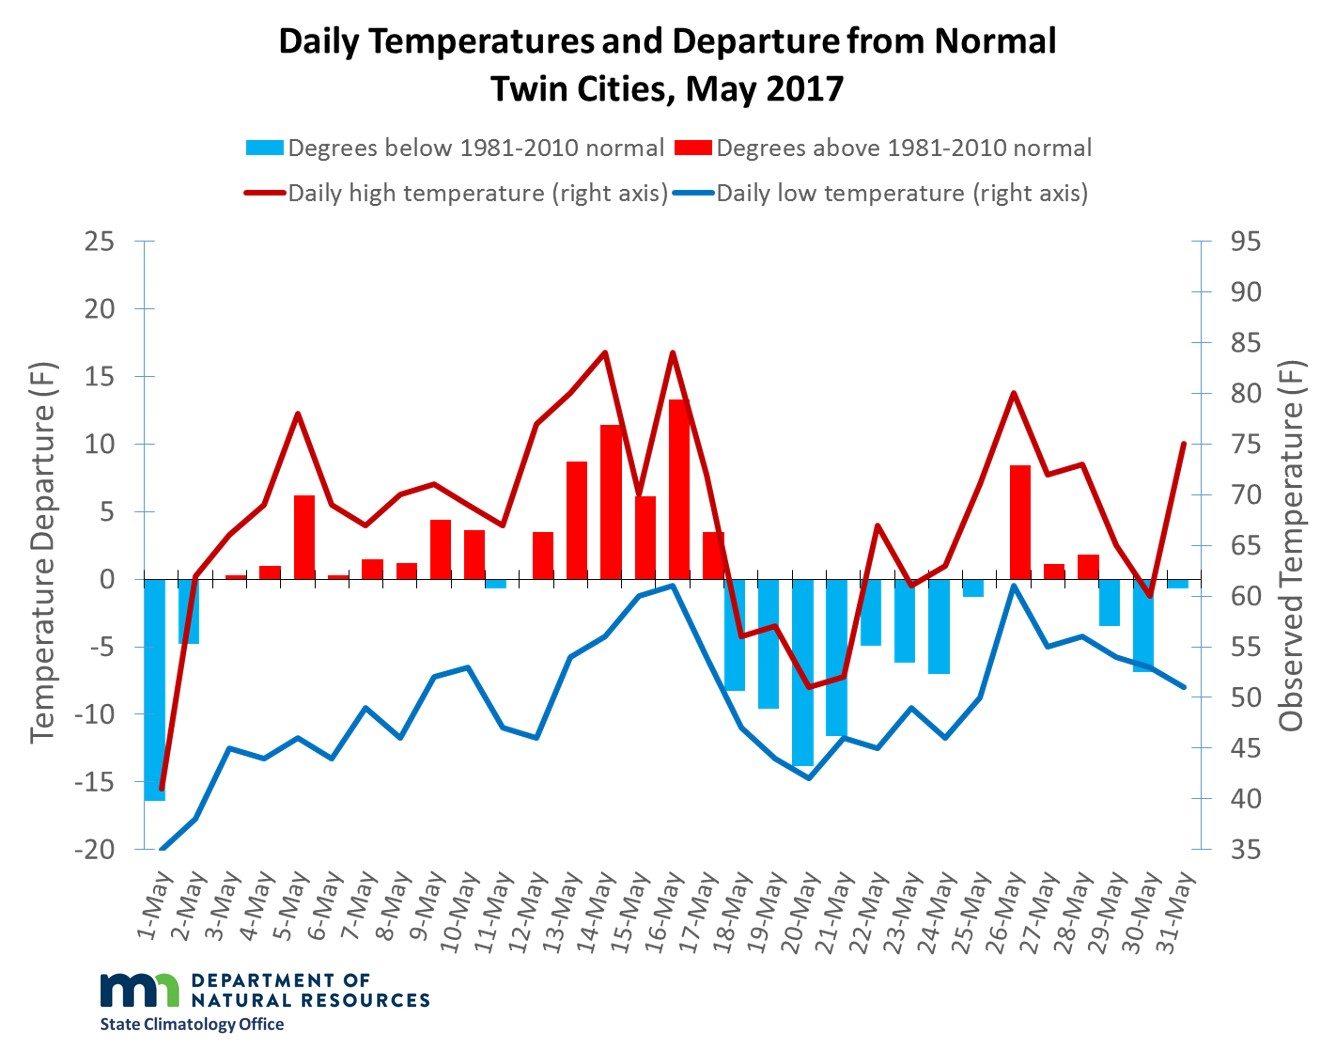 Graph of May 2017 temperatures and departures in the Twin Cities